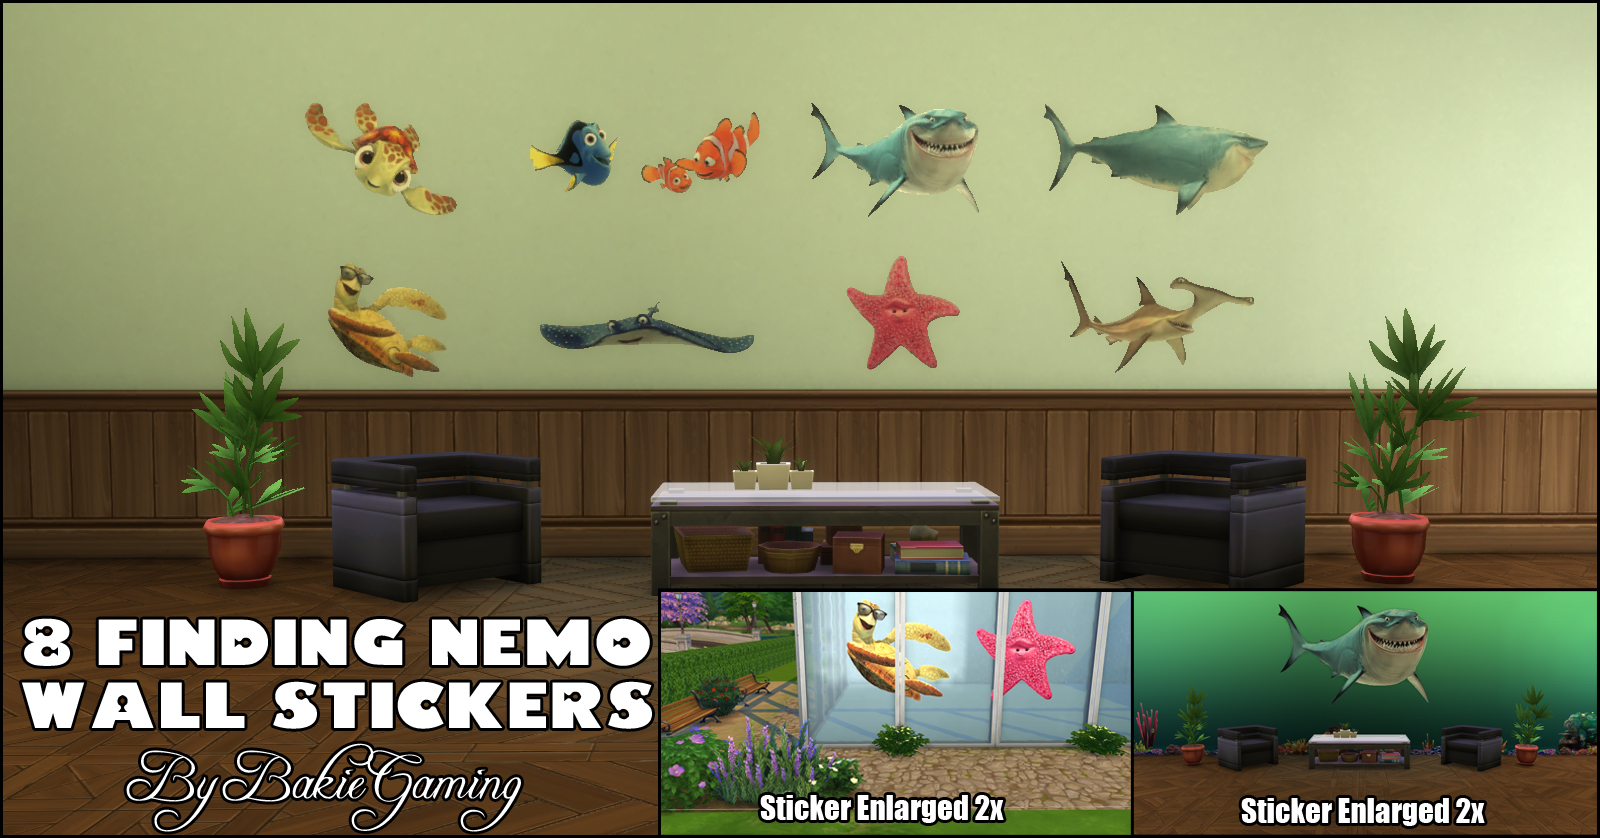 Finding Nemo Wall Stickers With These Fun Wall Decals You Can Decorate  Everything! Decorate Your Walls, Windows, Pool Walls Or Pool Windows.